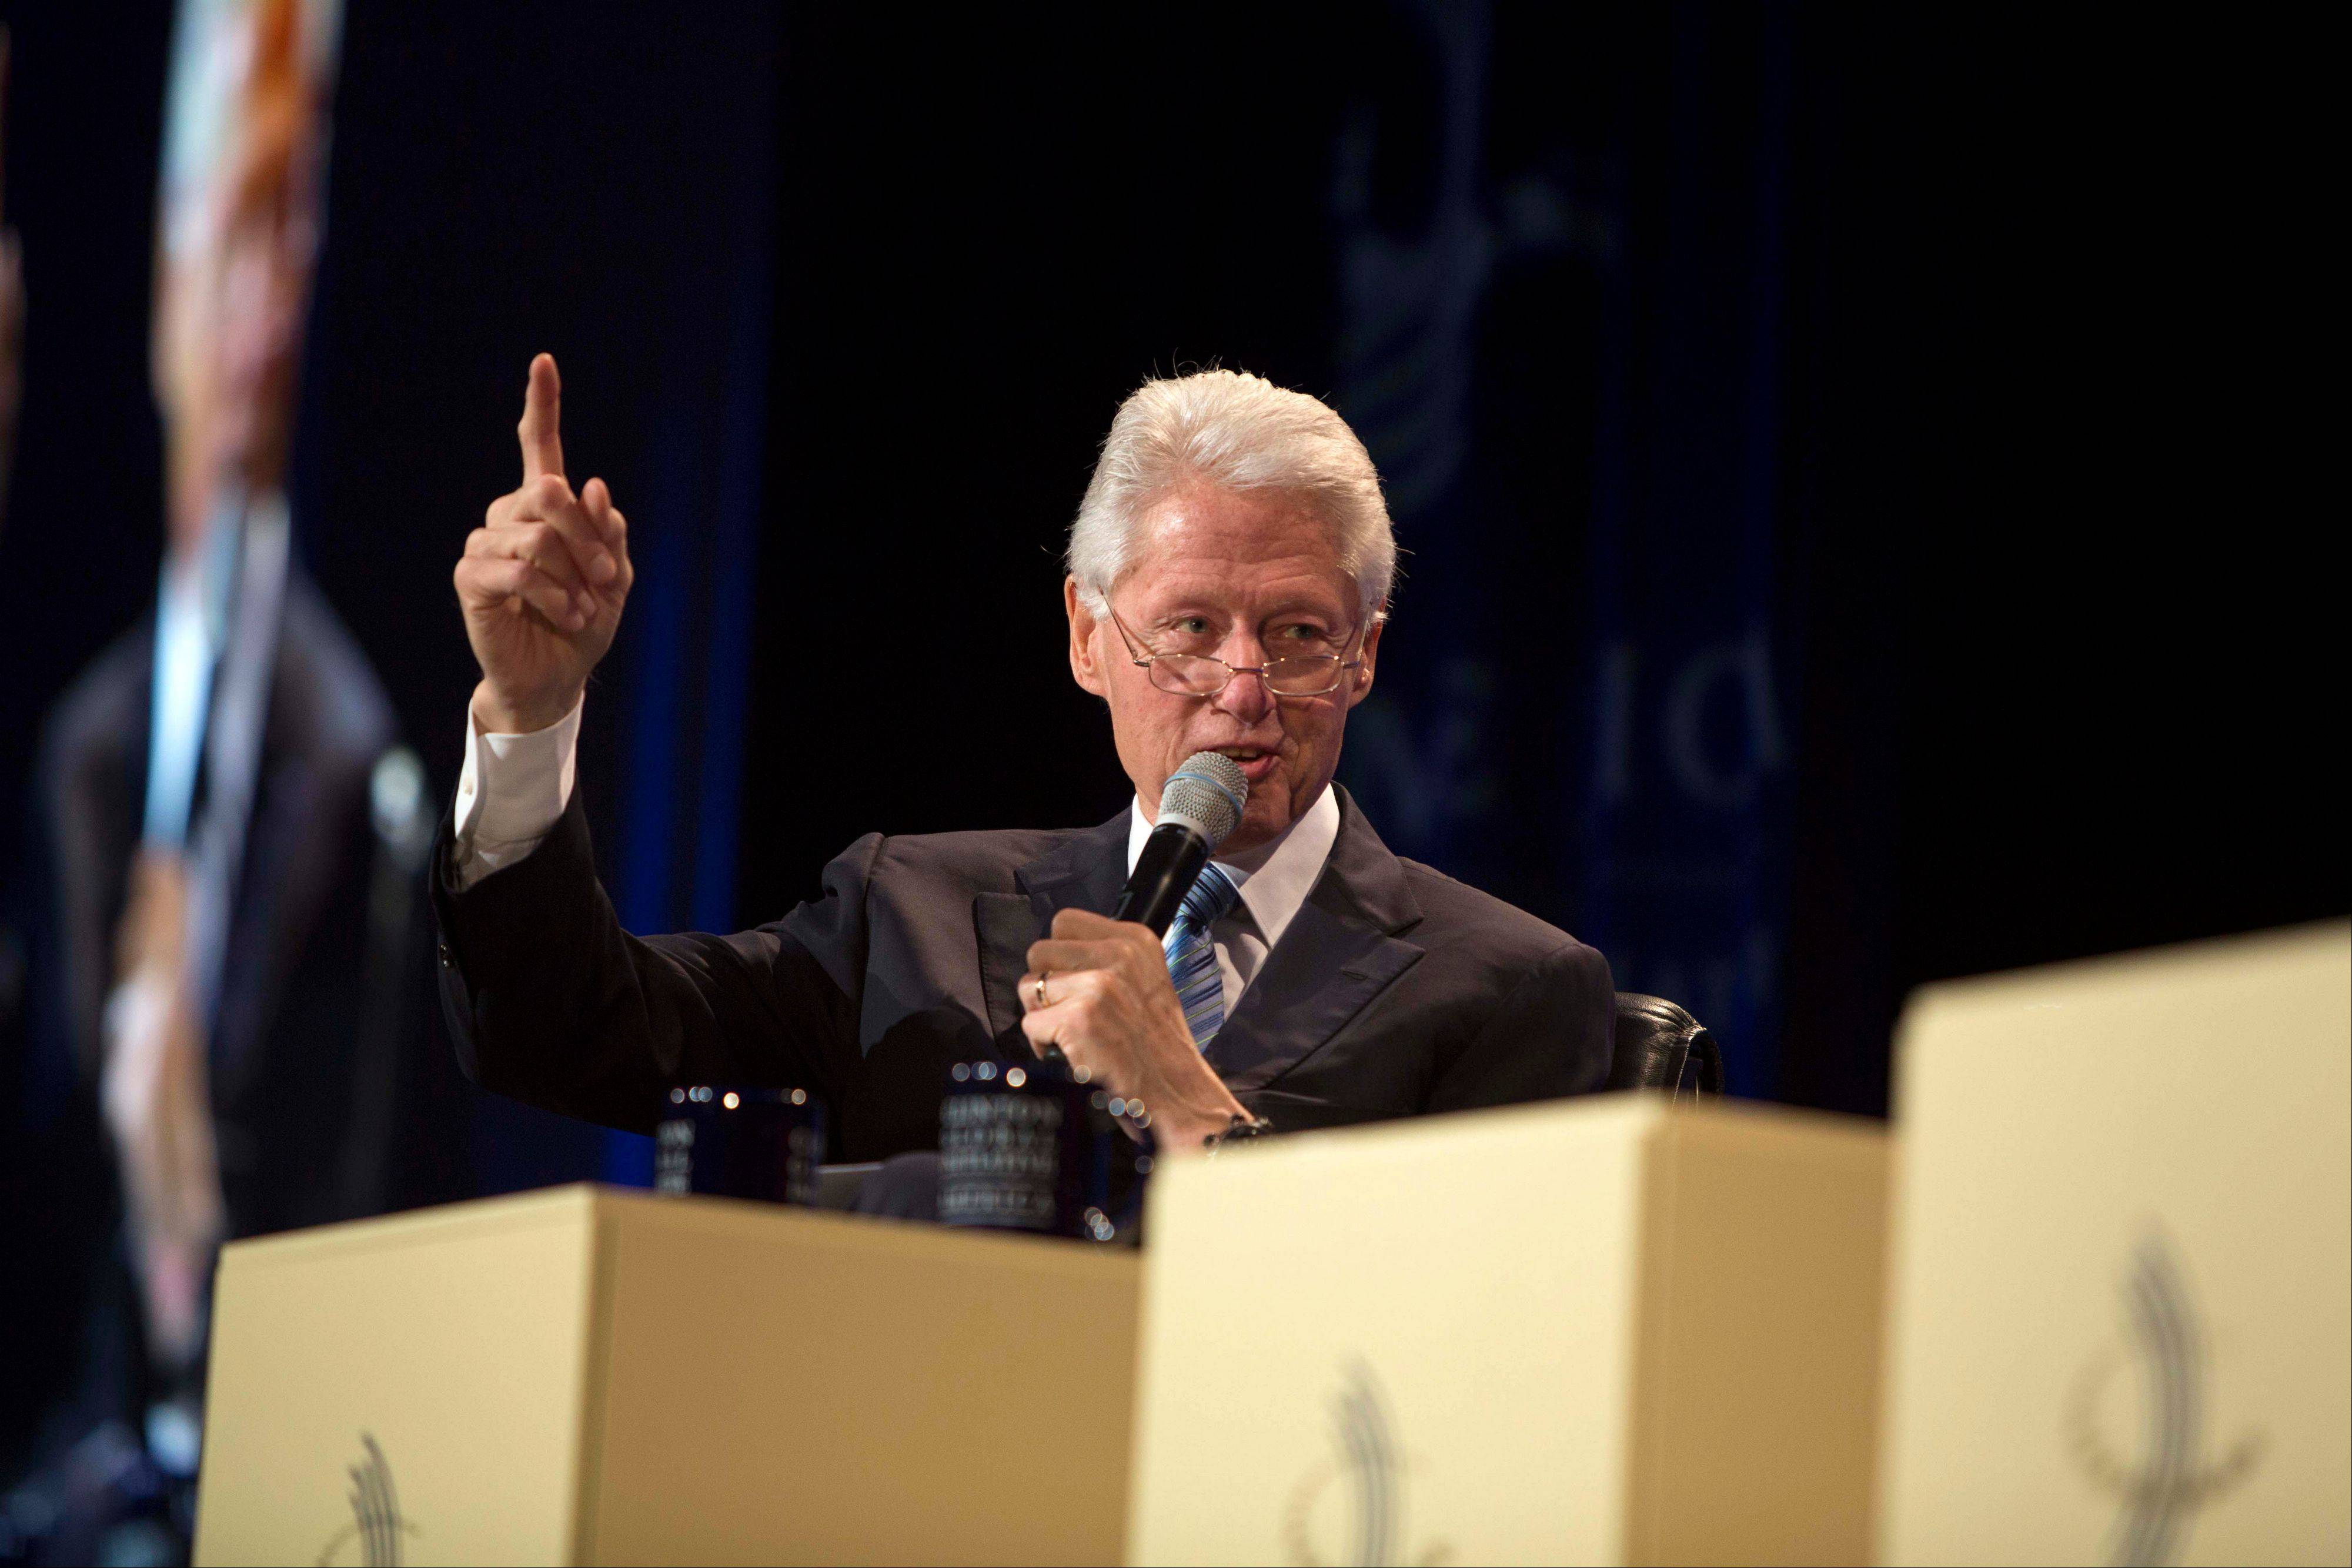 Former President Bill Clinton was joined by other politicians and business leaders Thursday in Chicago to discuss new ways to achieve economic and social mobility.